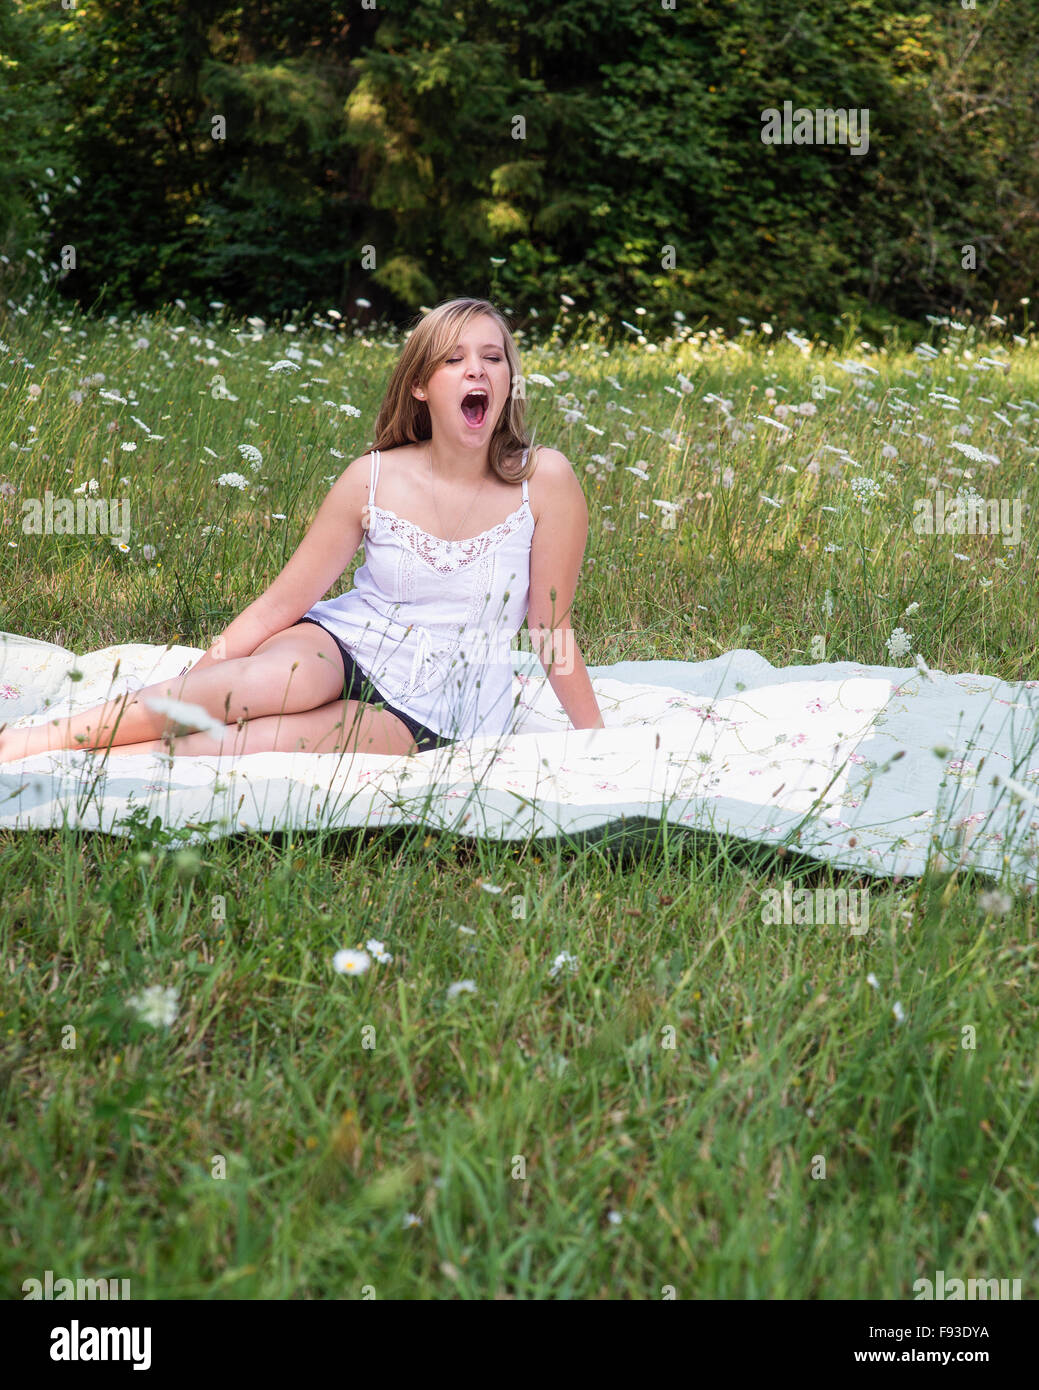 A young woman yawning in a field of flowers. - Stock Image